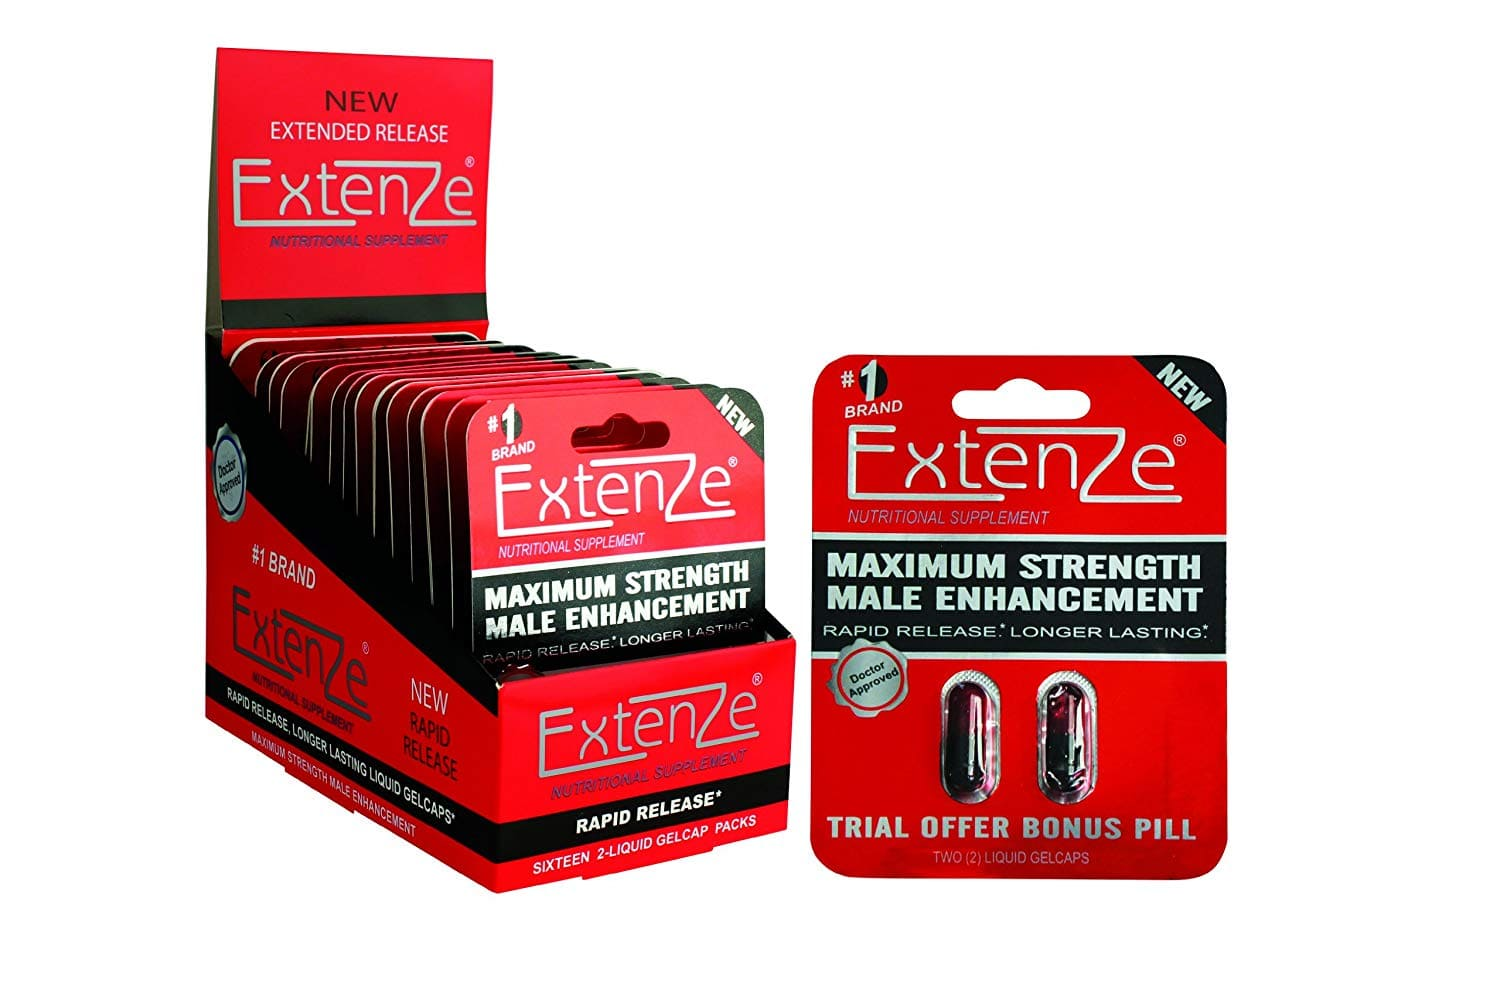 best online Male Enhancement Pills Extenze deals  2020